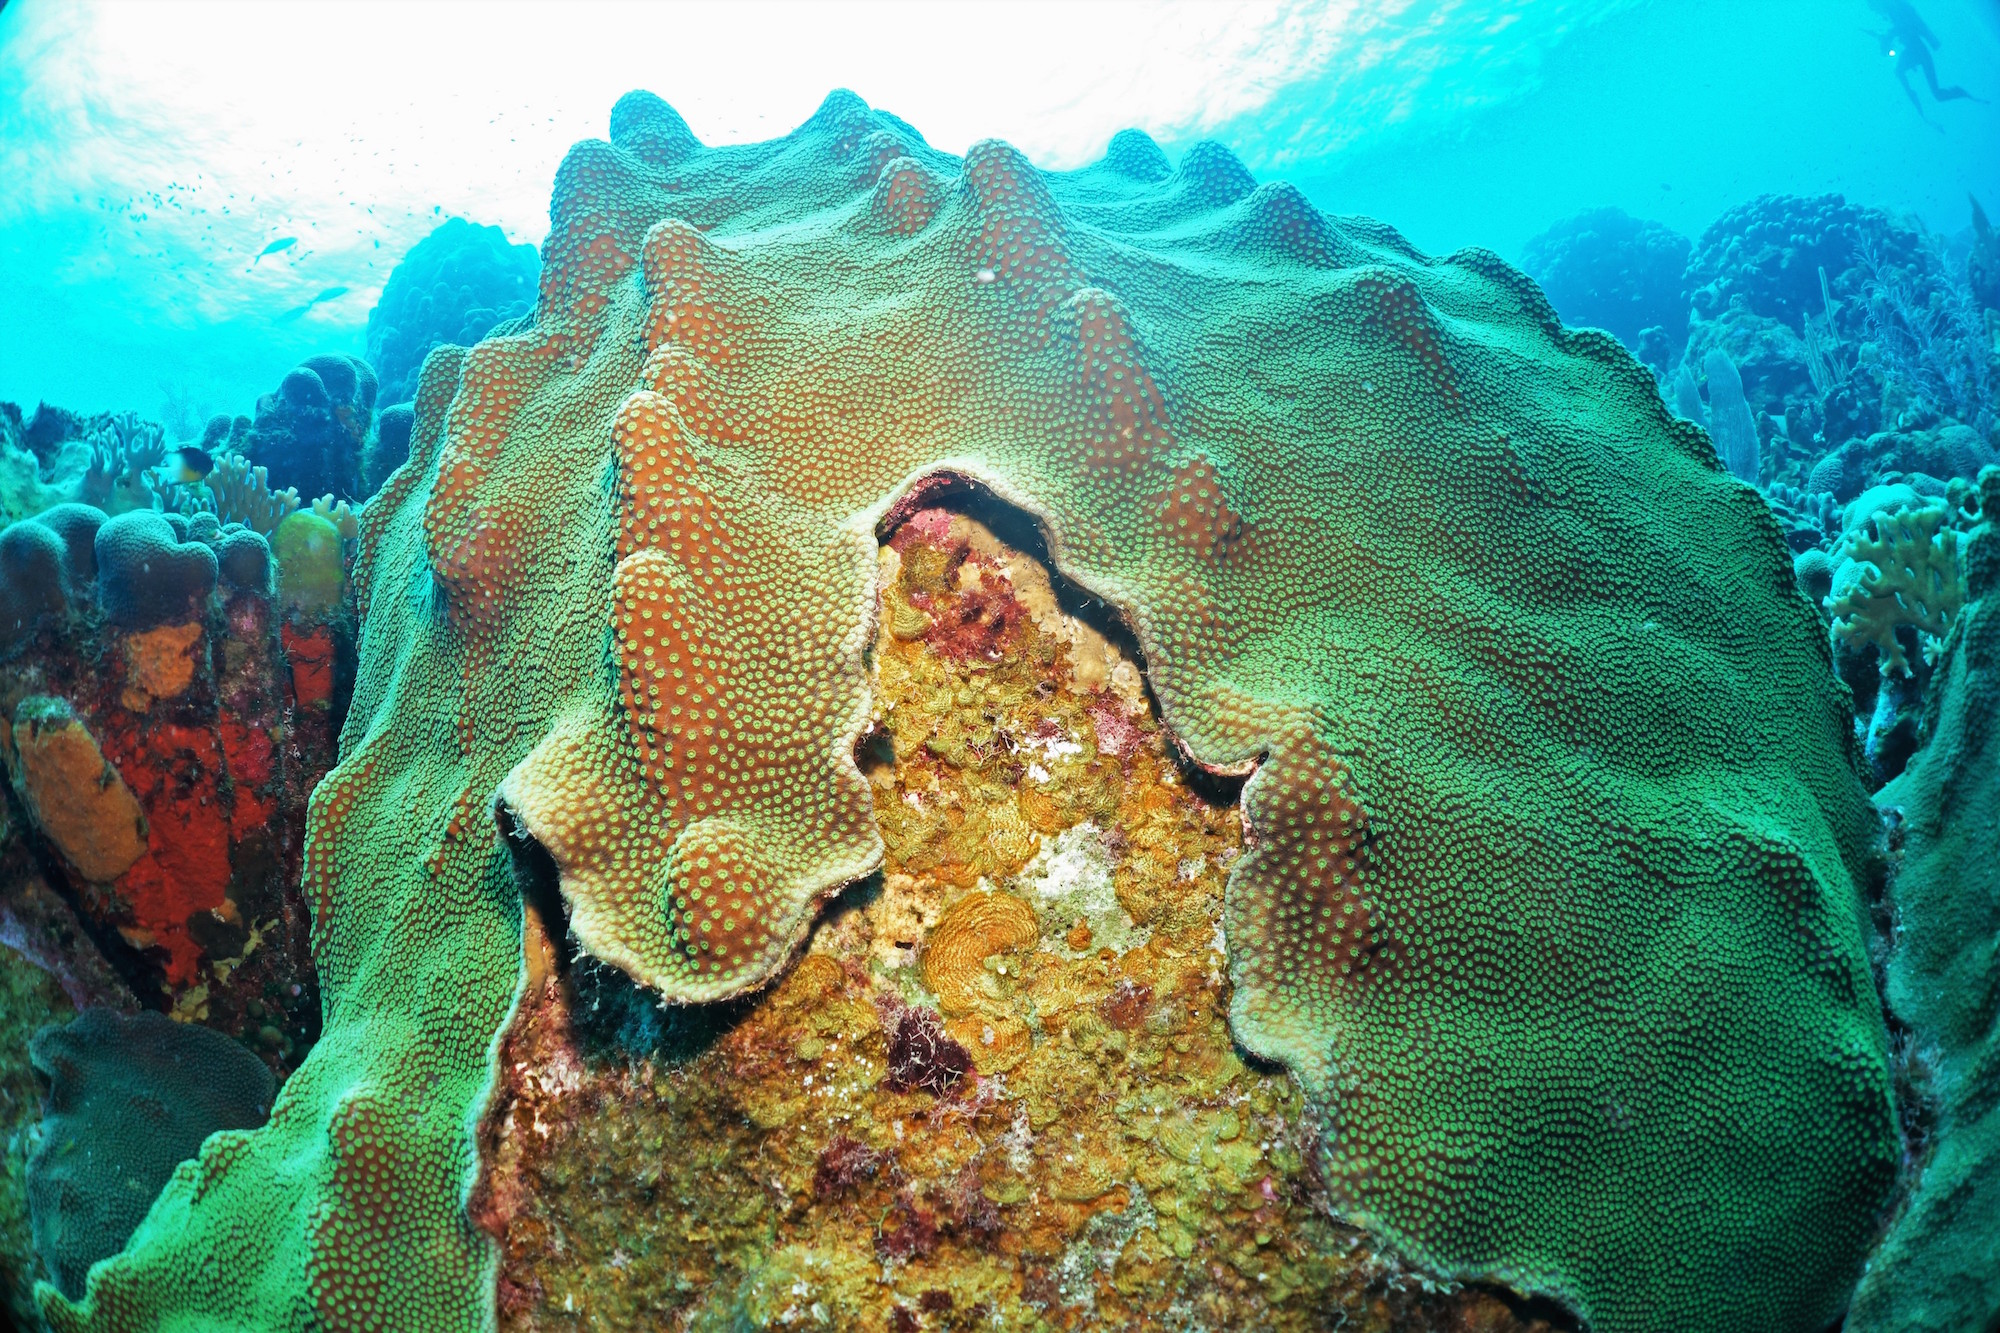 Competition between coral and algae on a reef is mediated by the interaction between all of their associated viruses, bacteria and biochemicals. Hard coral is being overtaken by turf algae. Credit: Ty Roach.